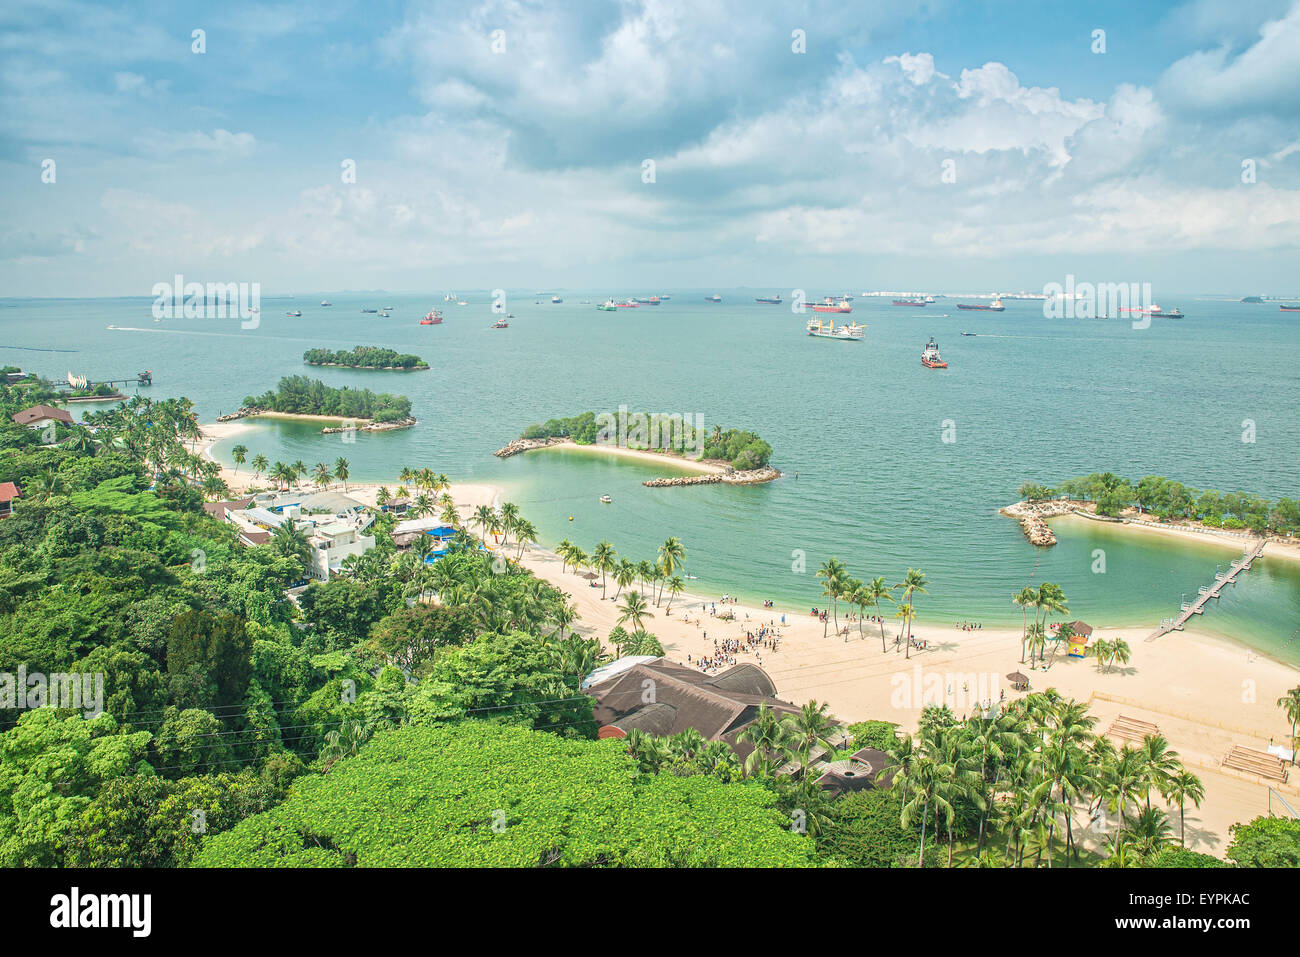 Aerial view of beach in Sentosa island, Singapore - Stock Image